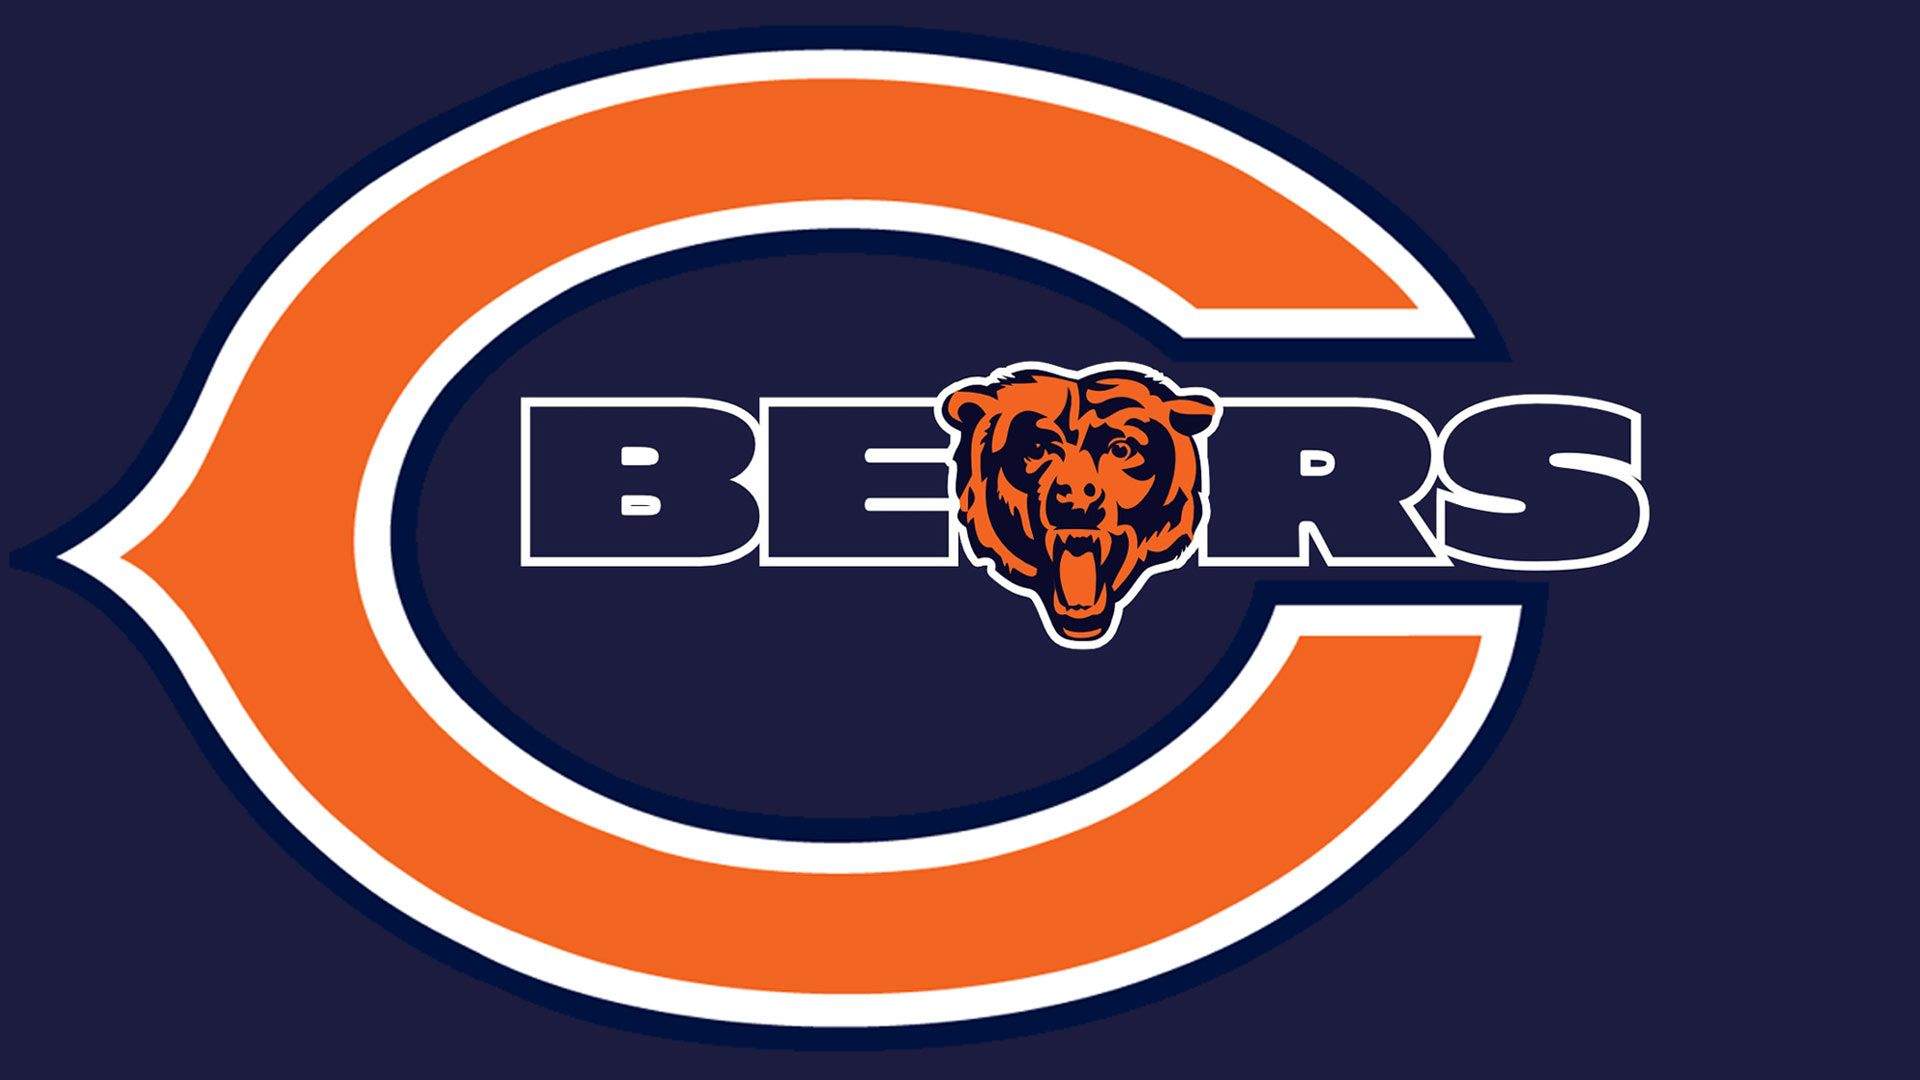 Chicago Bears wallpaper | 1920x1080 | #73265